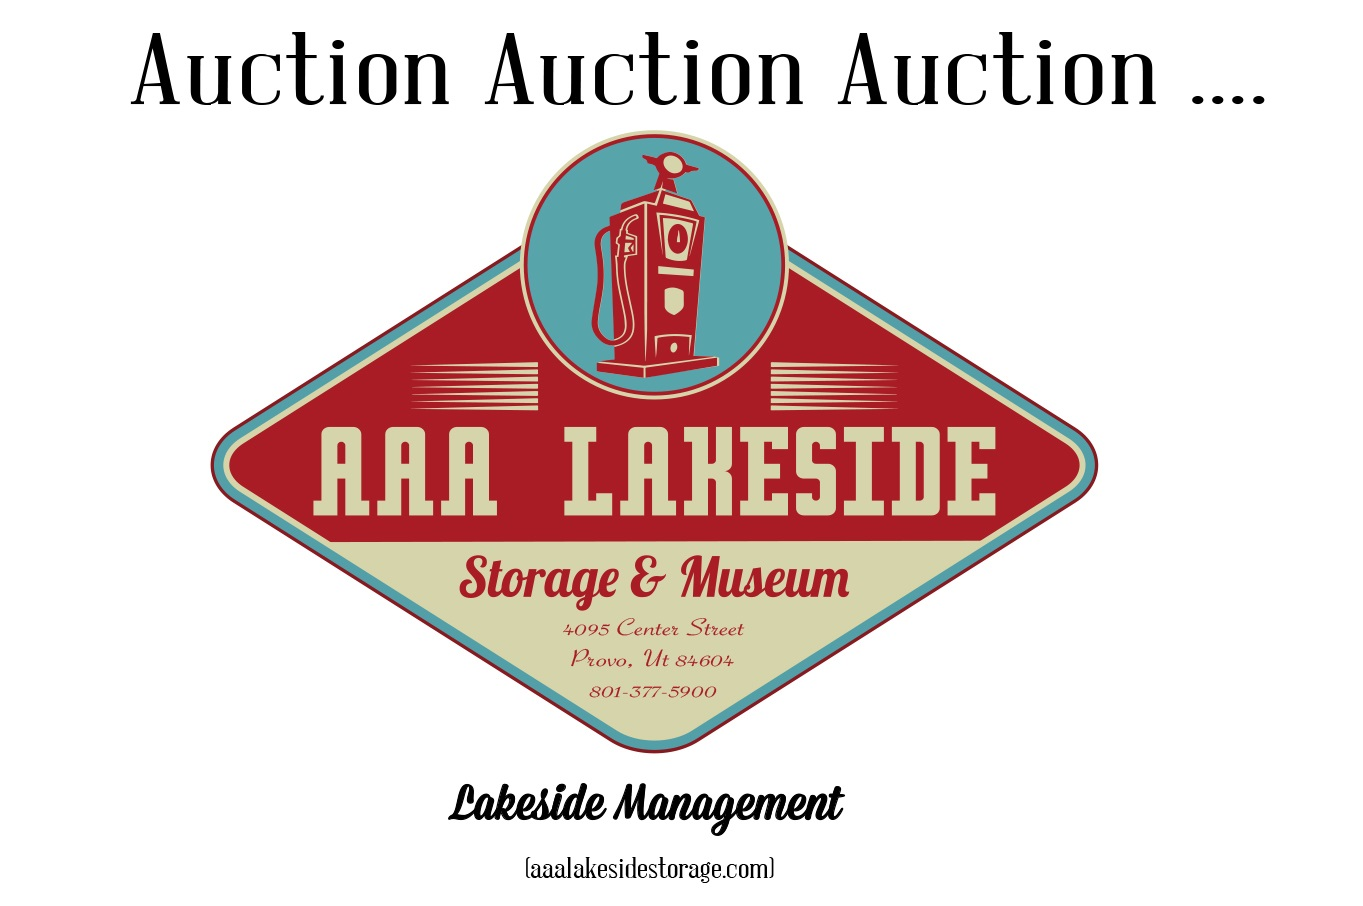 Join us tomorrow Saturday, April 8th at 11AM for an auction! Tomorrow we will be auctioning O140, which includes mopeds & a motorcycle. The 2 boats & pull behind camper have been rescheduled due to lien & paperwork delays.